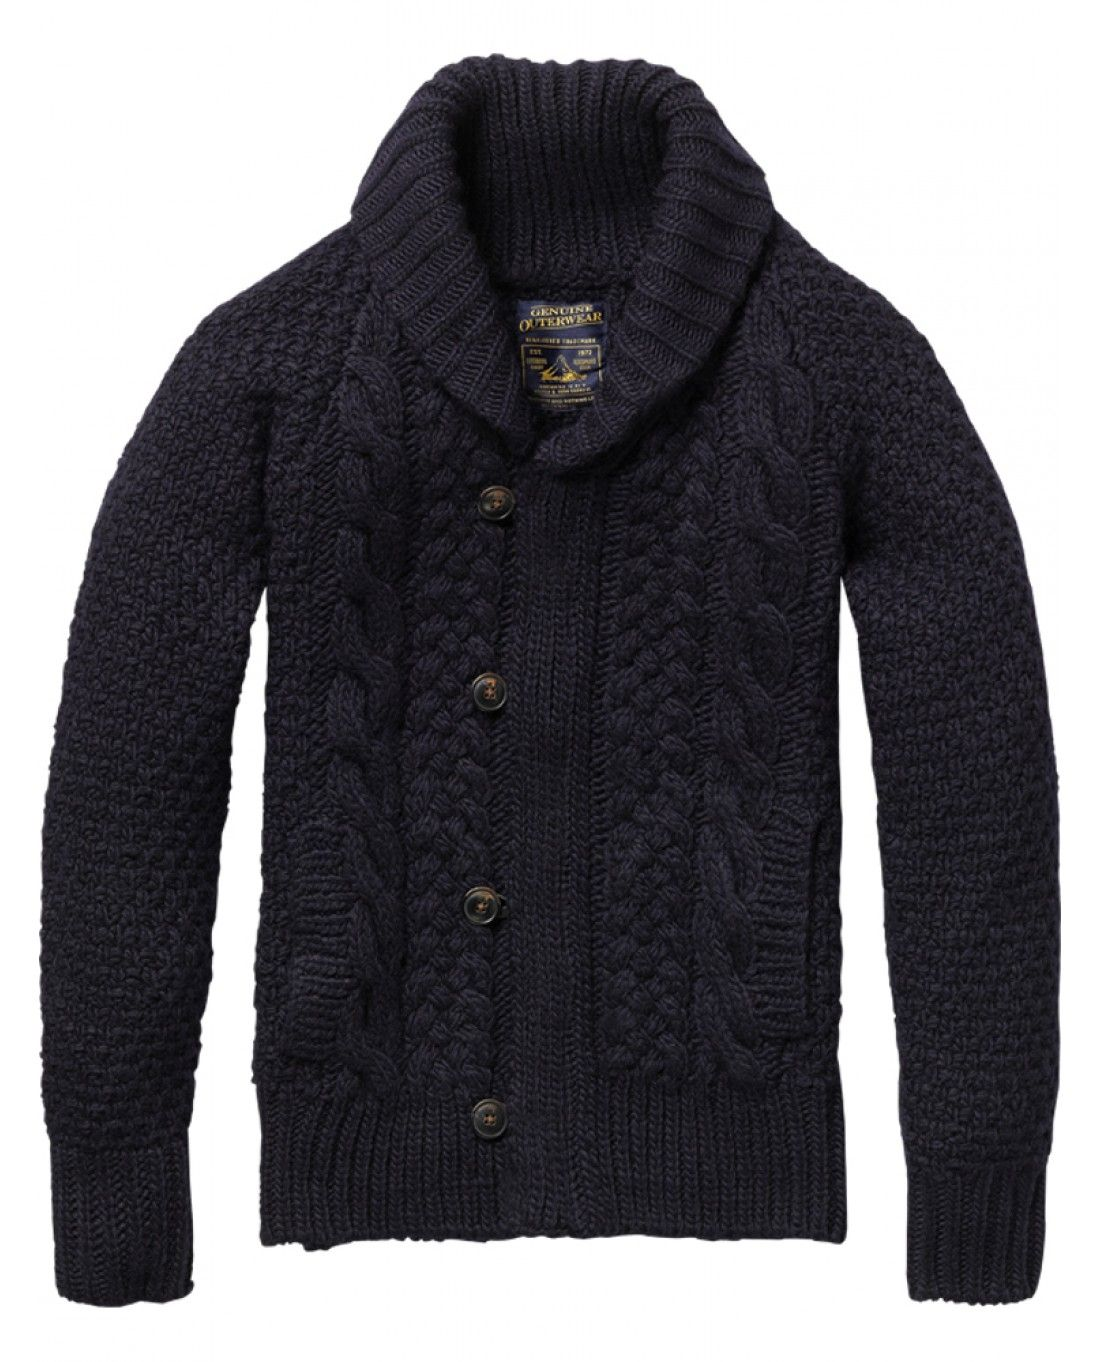 Heavy cable knitted zip-through cardigan - Pulls - Scotch & Soda ...